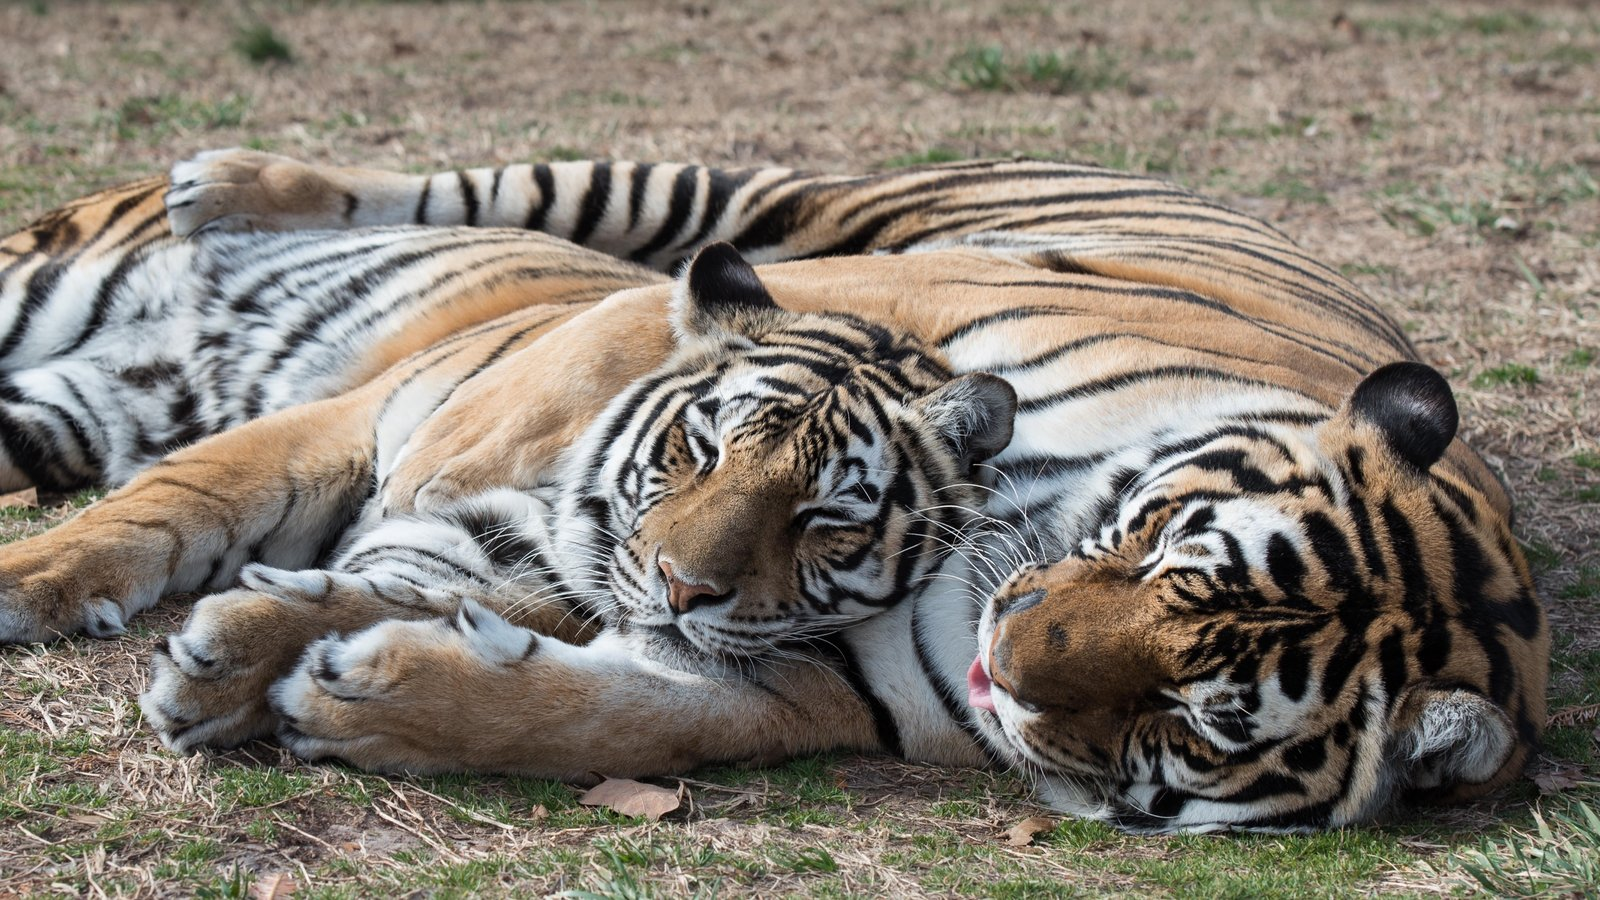 animals arkansas wild wildlife creek state natural tigers bears lions refuge turpentine seeing usa zoo september places